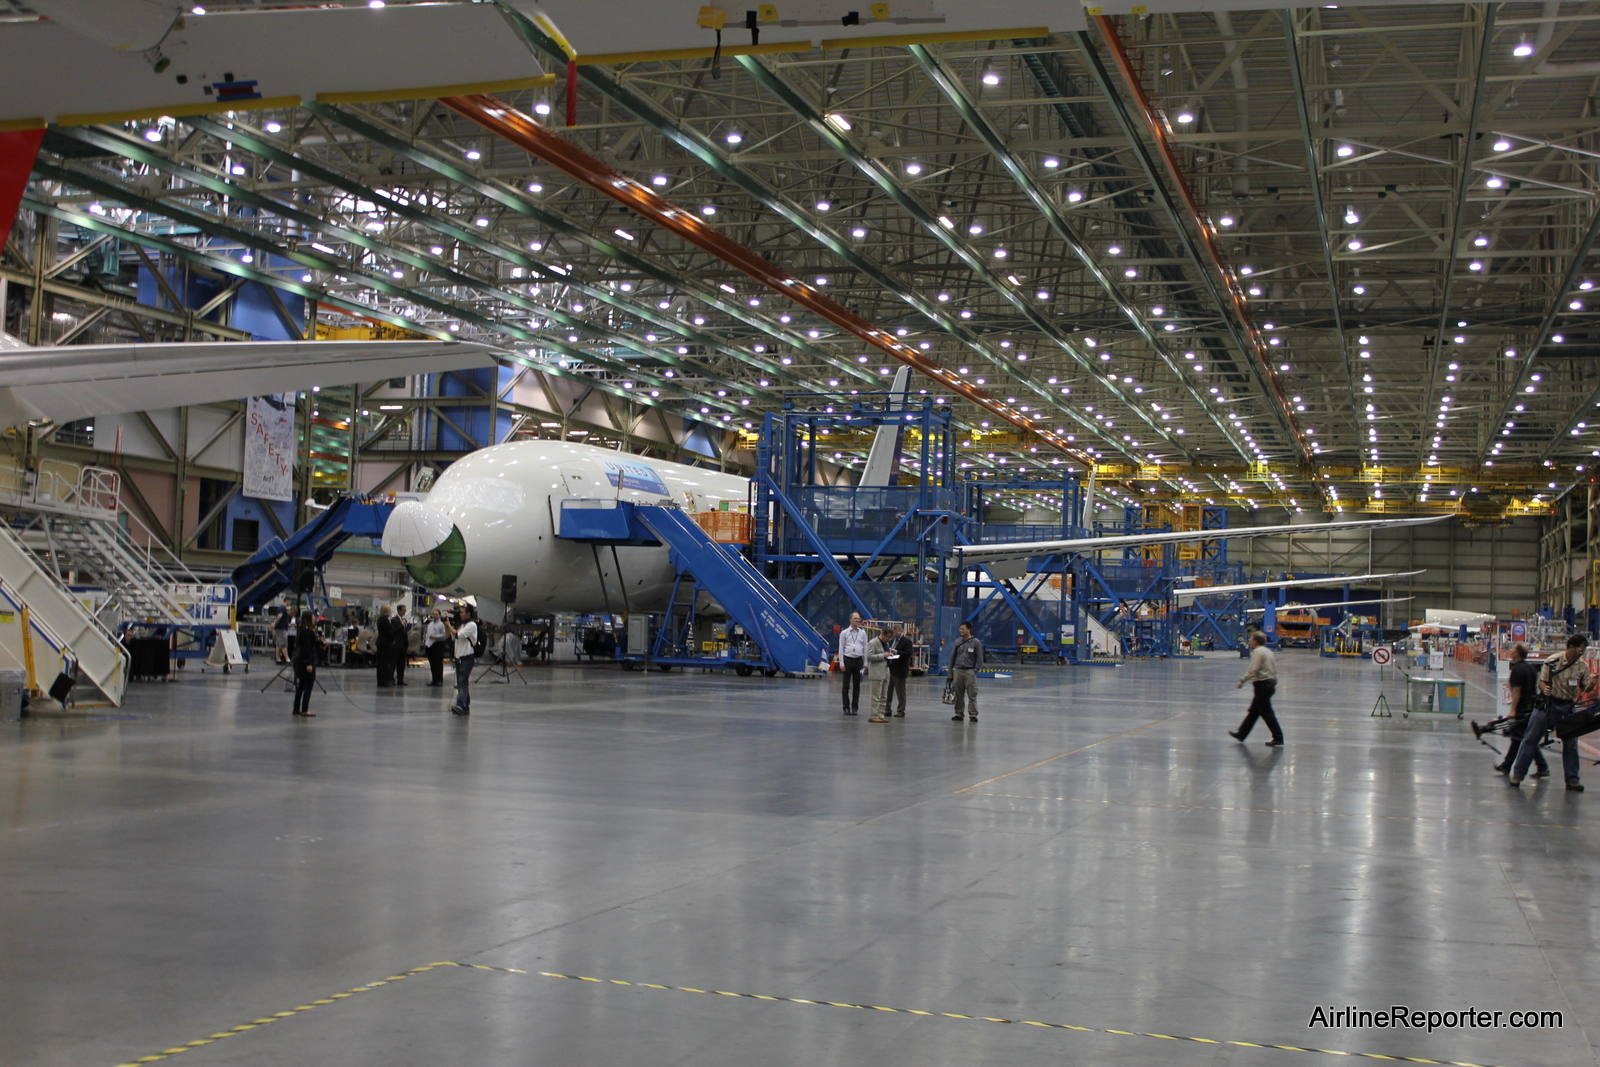 Photo Tour of the Boeing 787 Dreamliner Factory Floor